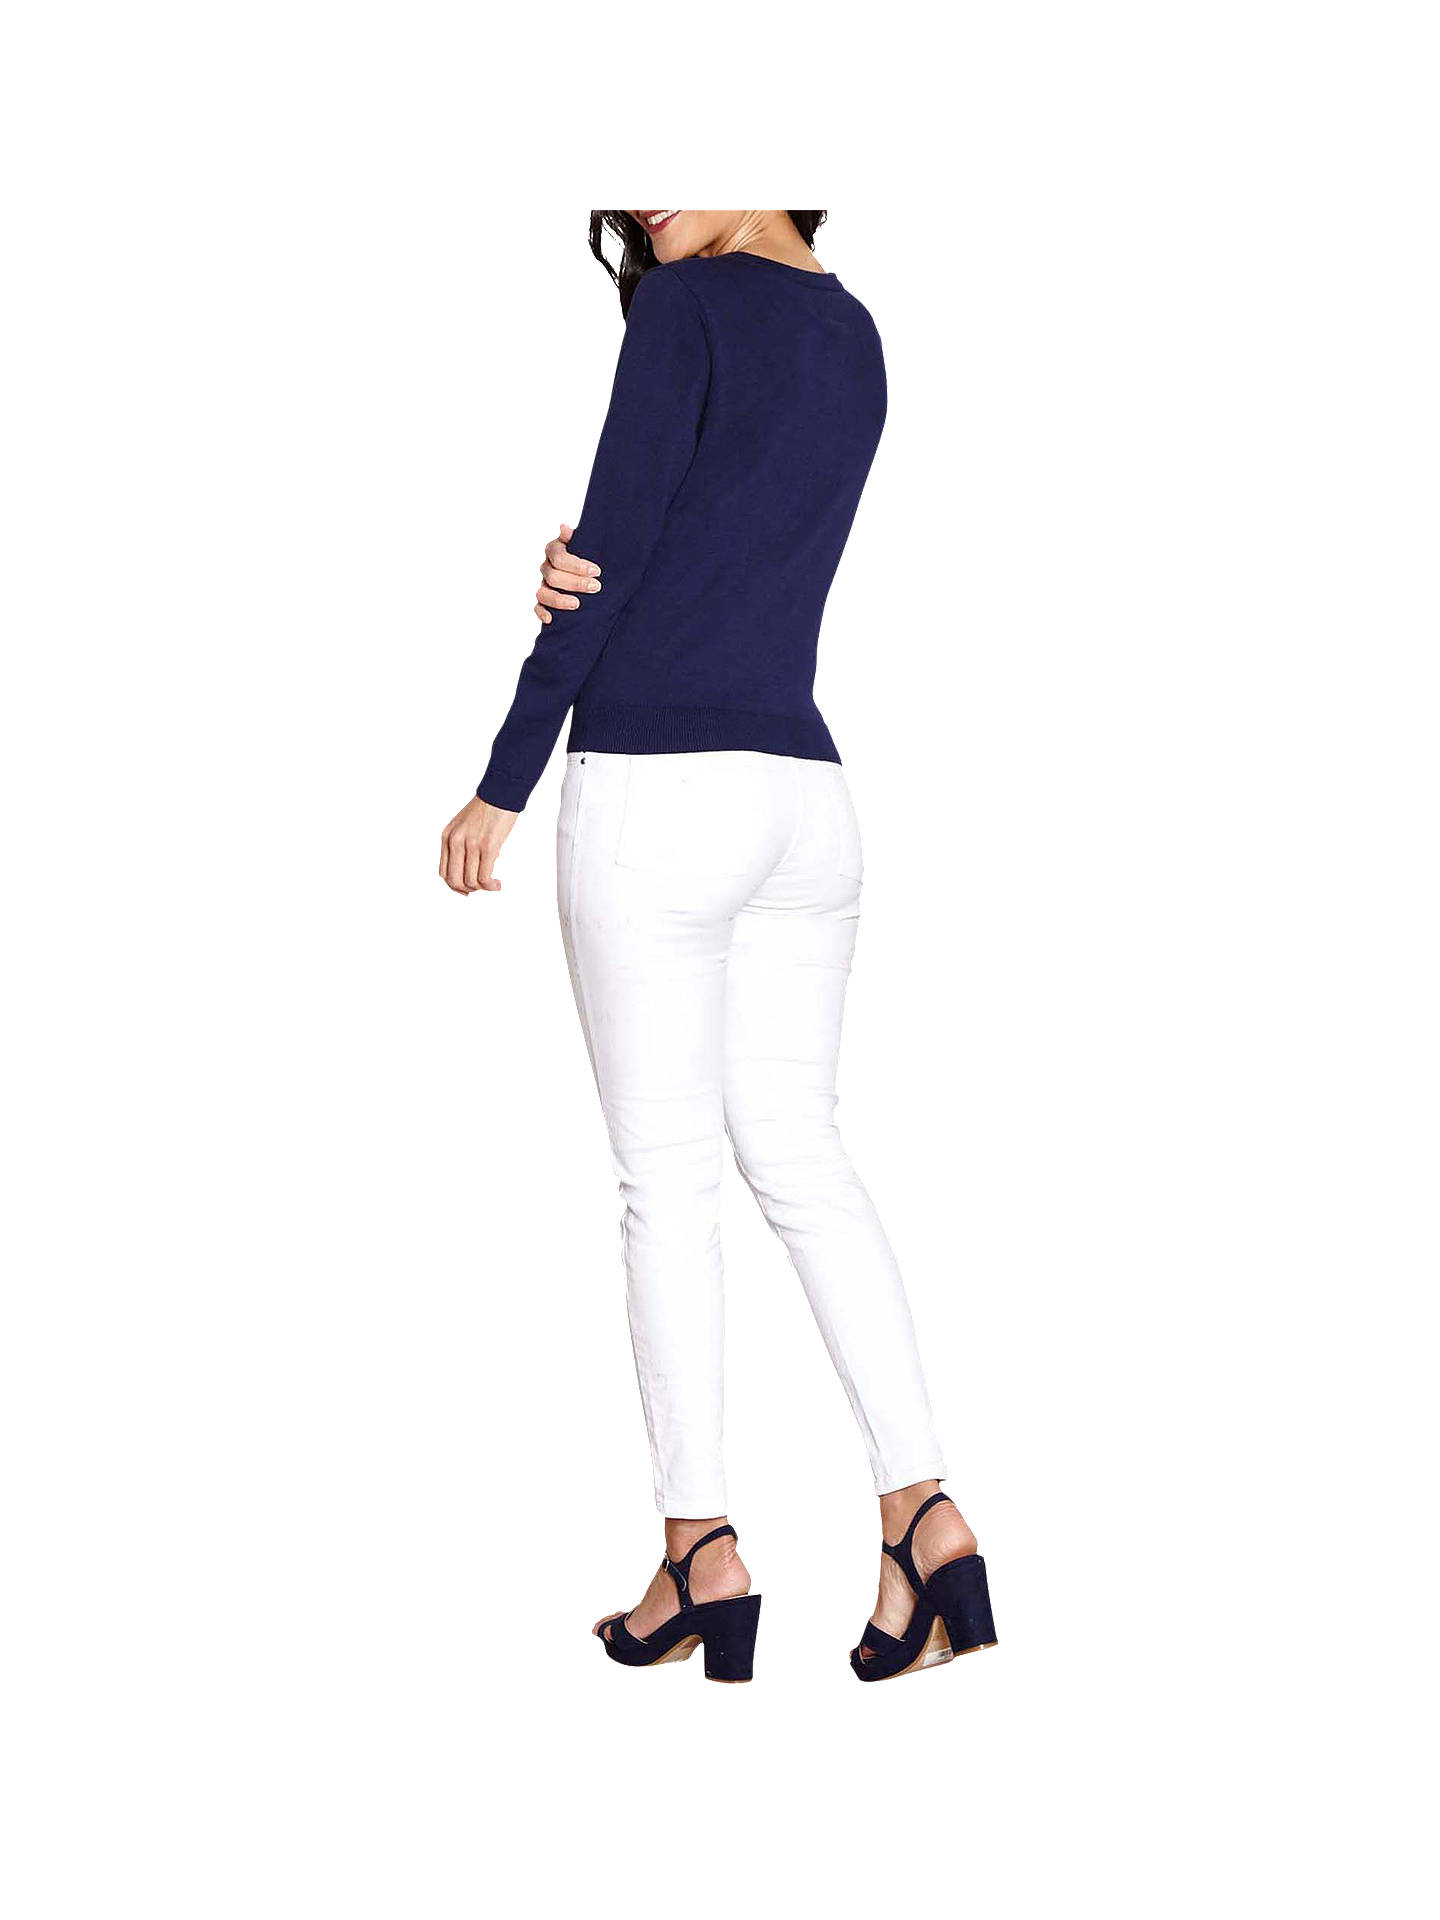 BuyYumi Lace Front Cardigan, Navy, S Online at johnlewis.com